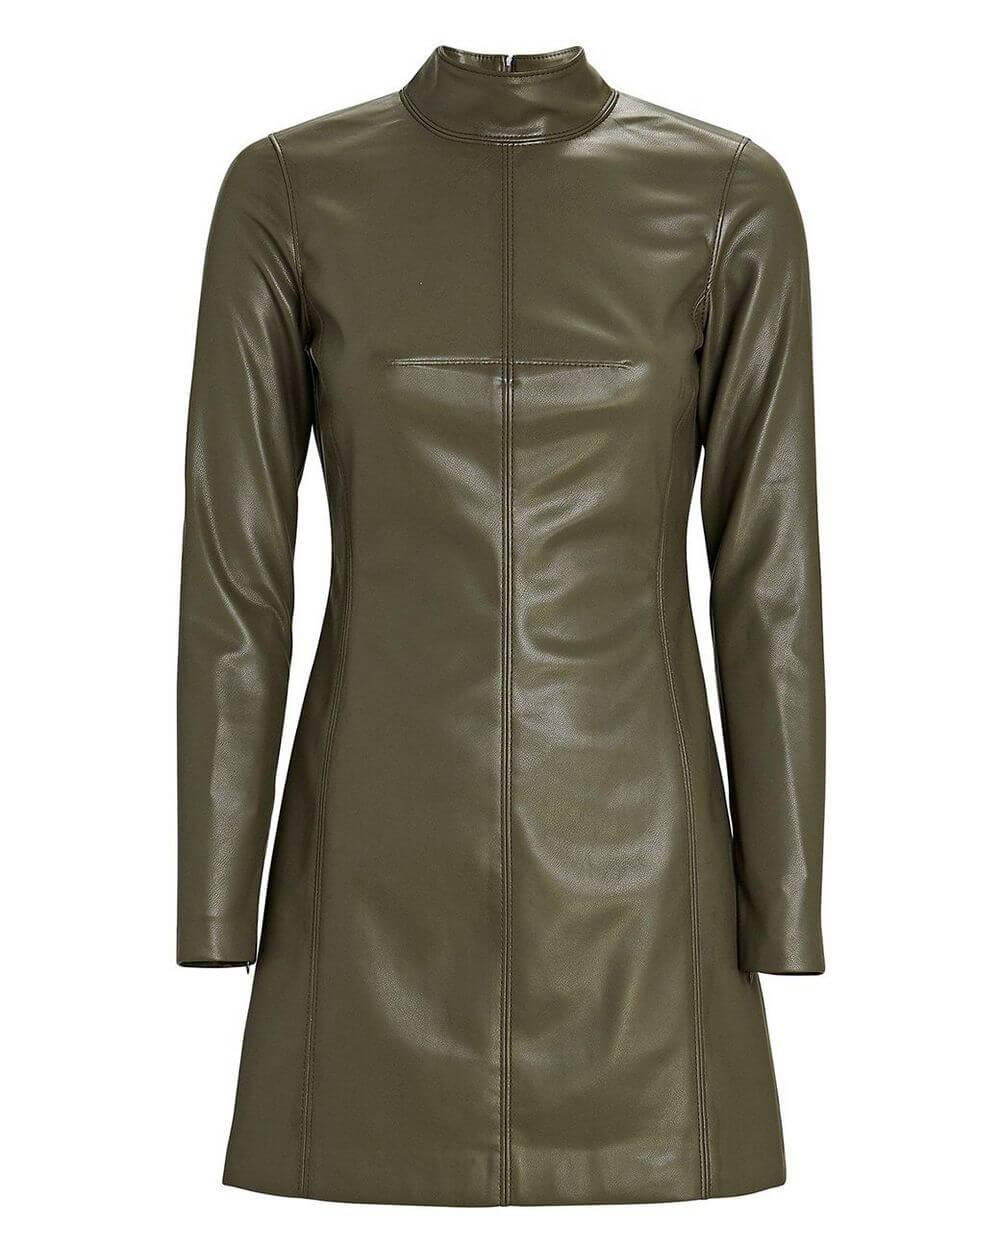 Misake Vegan Leather Dress